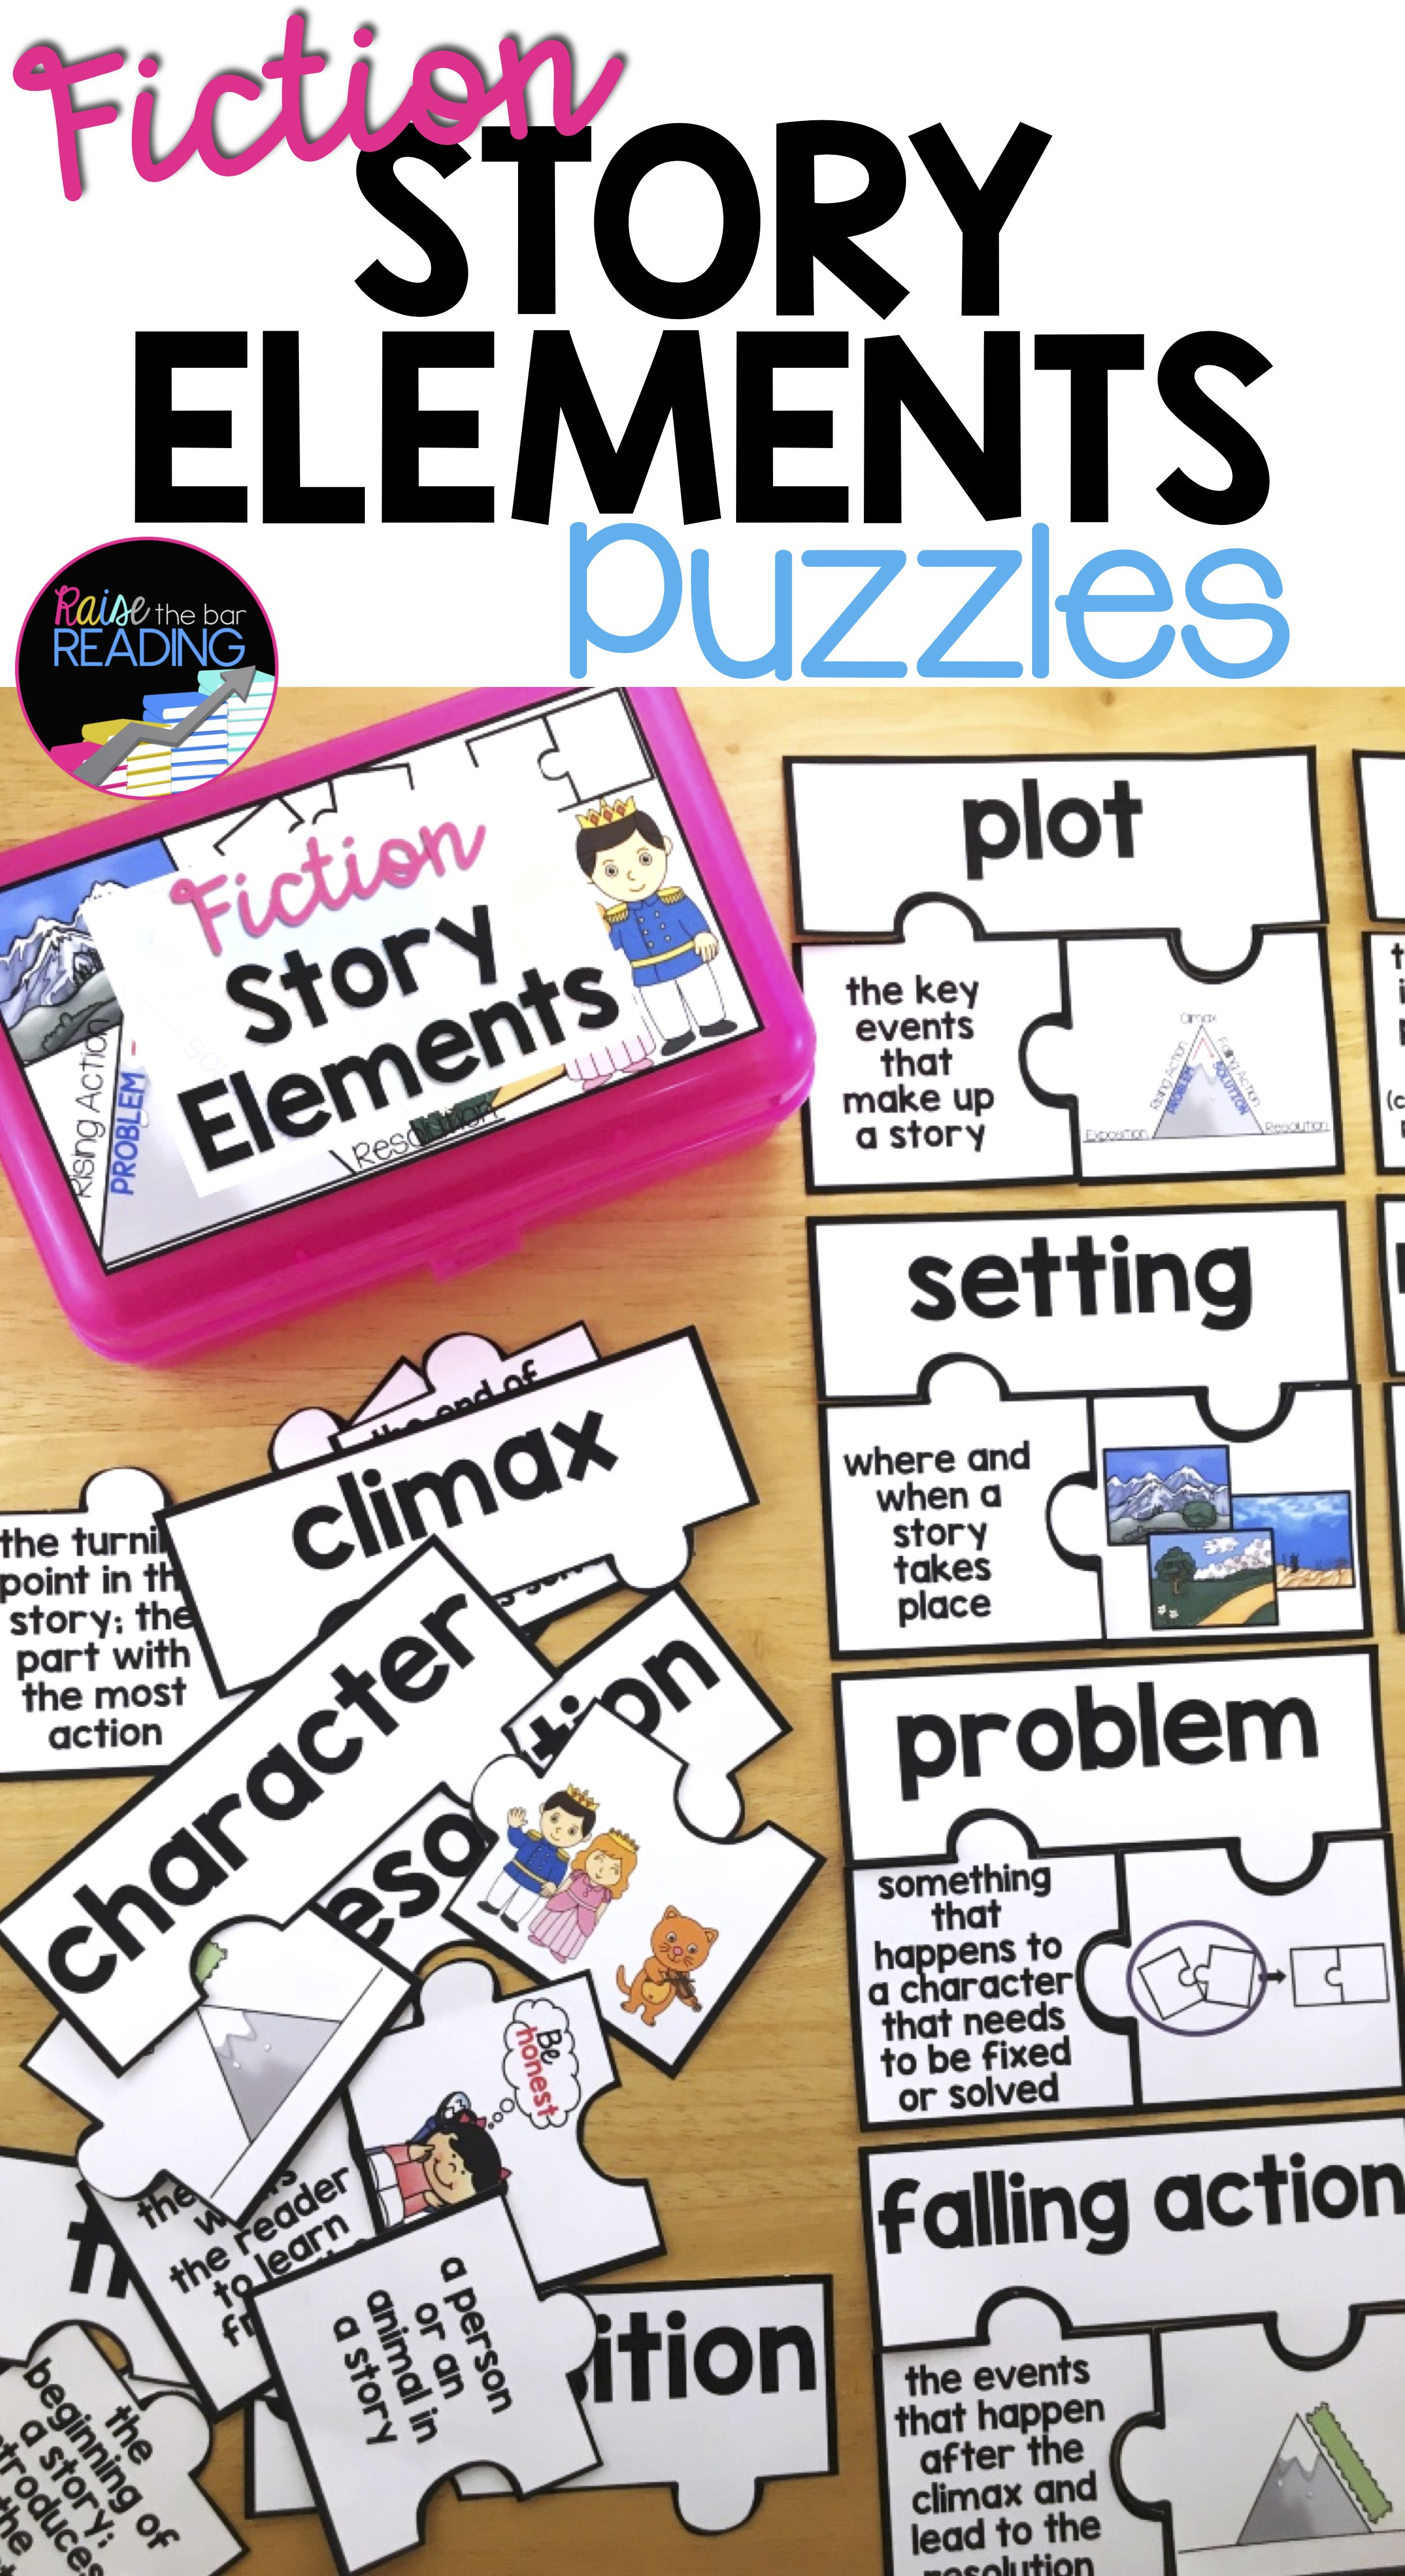 Fiction Story Elements Activity | 13 Elements of Fiction Vocabulary ...